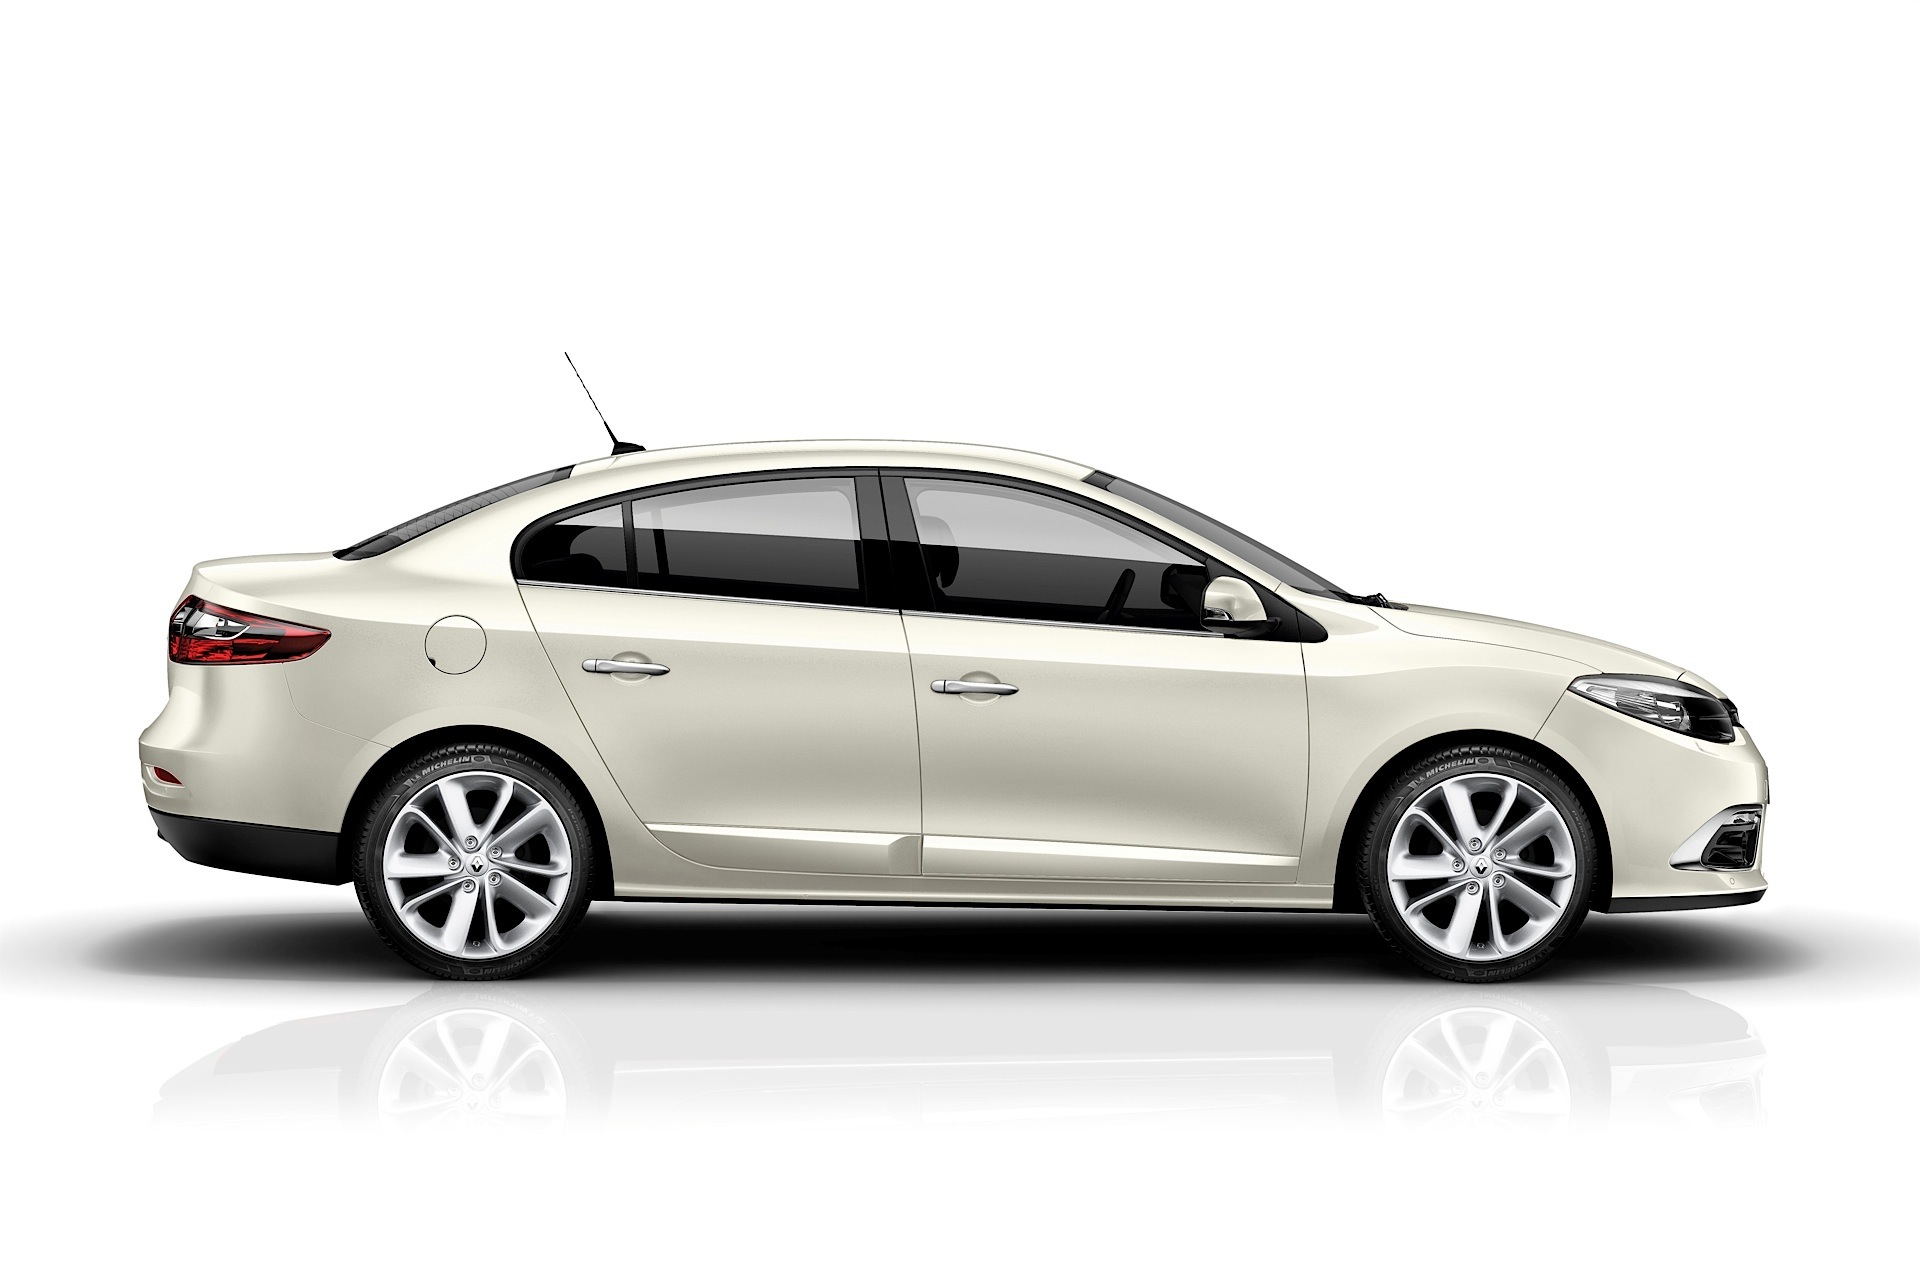 2013 Renault Fluence Prices in Qatar, Gulf Specs & Reviews for ...